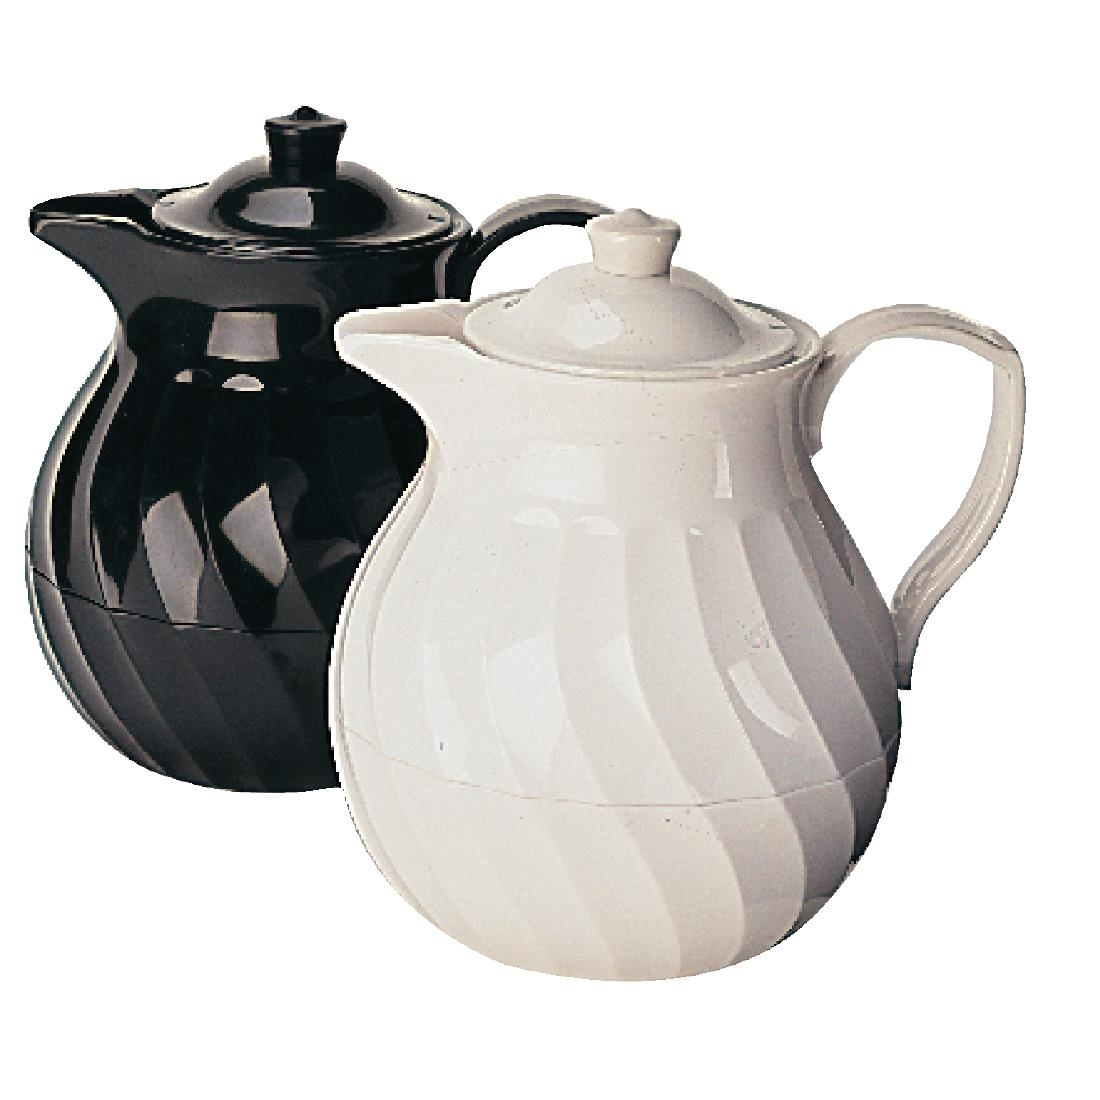 Image of Kinox Insulated Teapot Black 1 Ltr